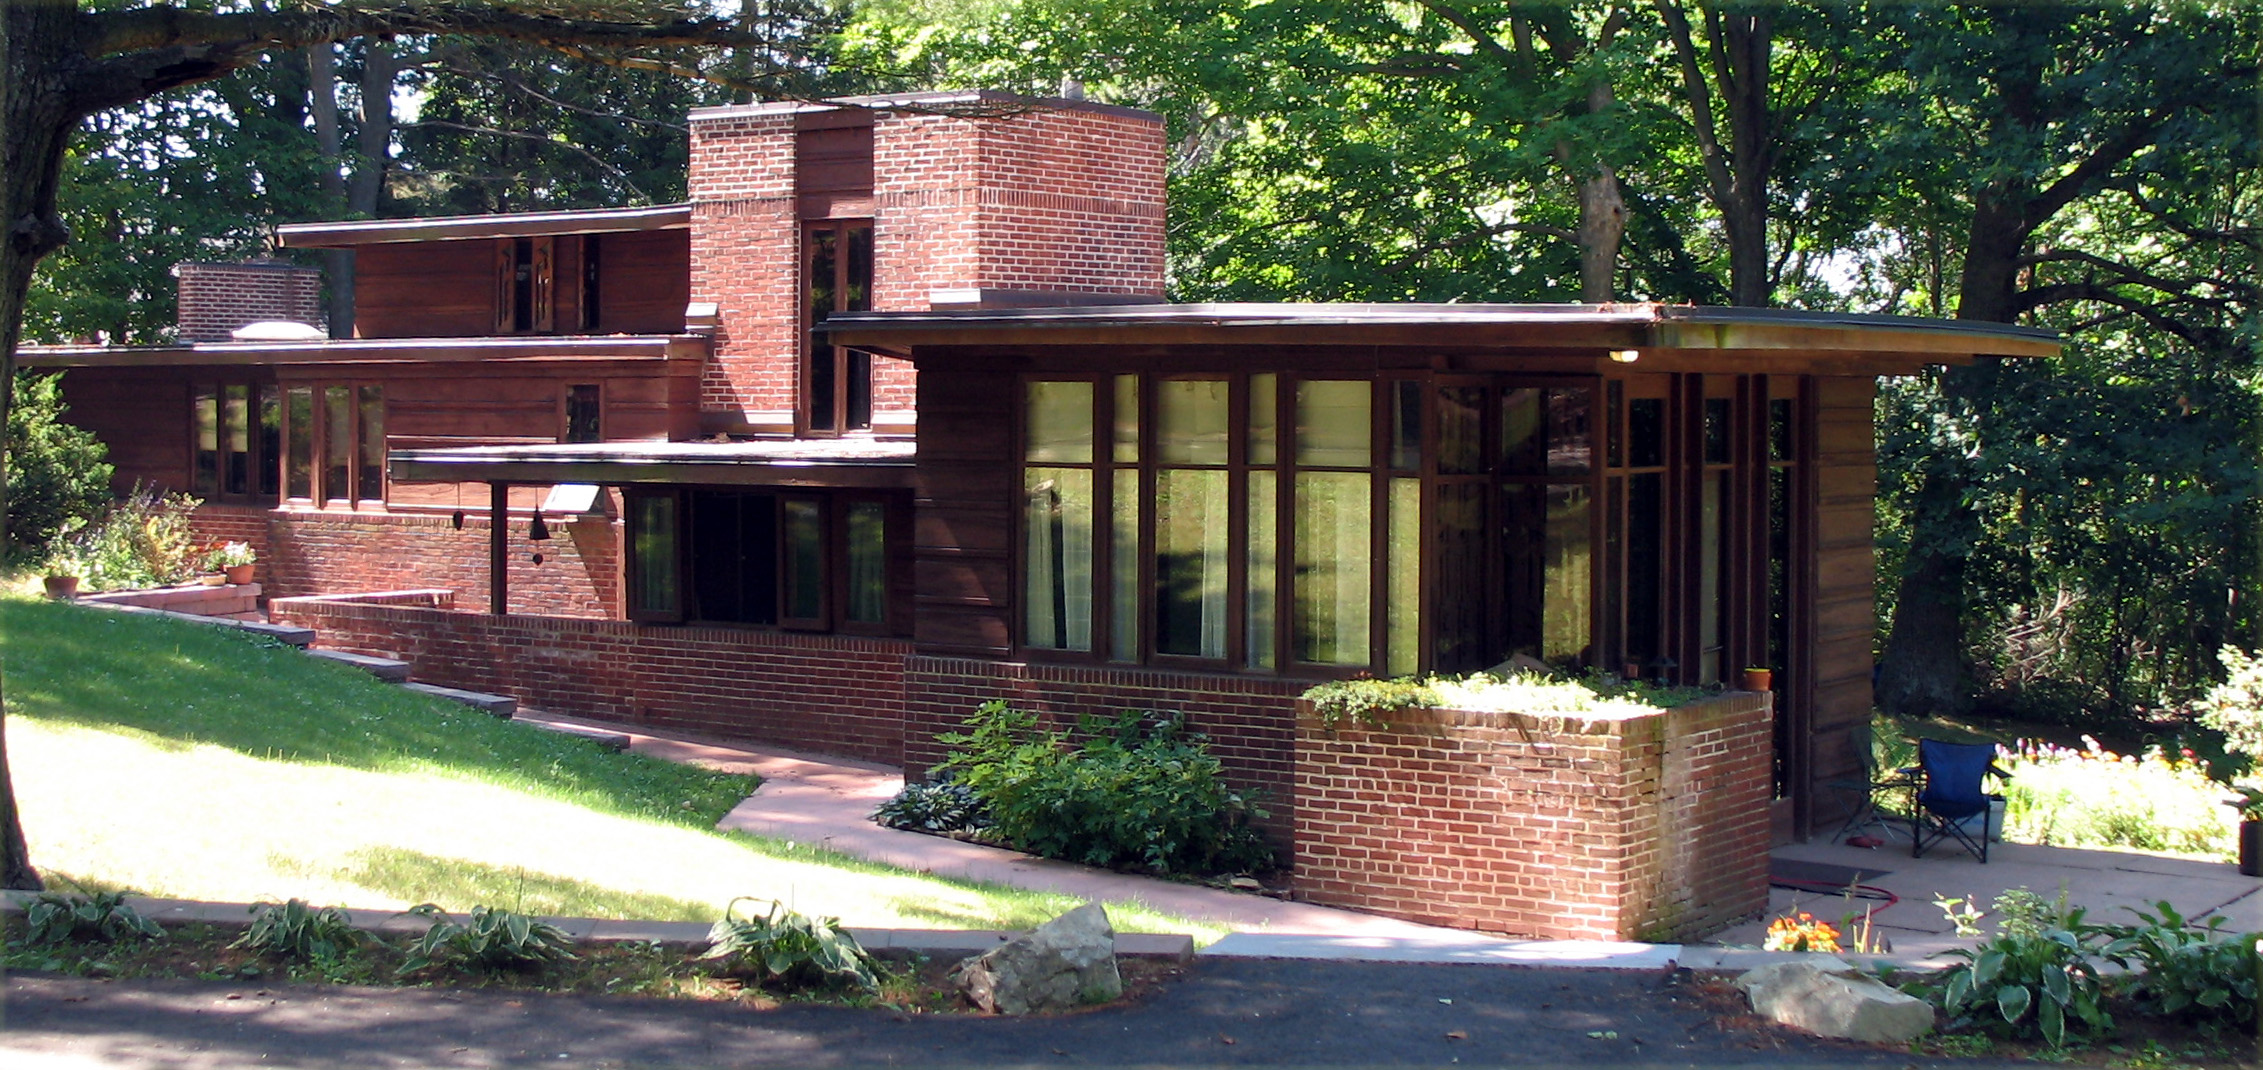 Usonian arbor builders bend home builders for Frank lloyd wright house design